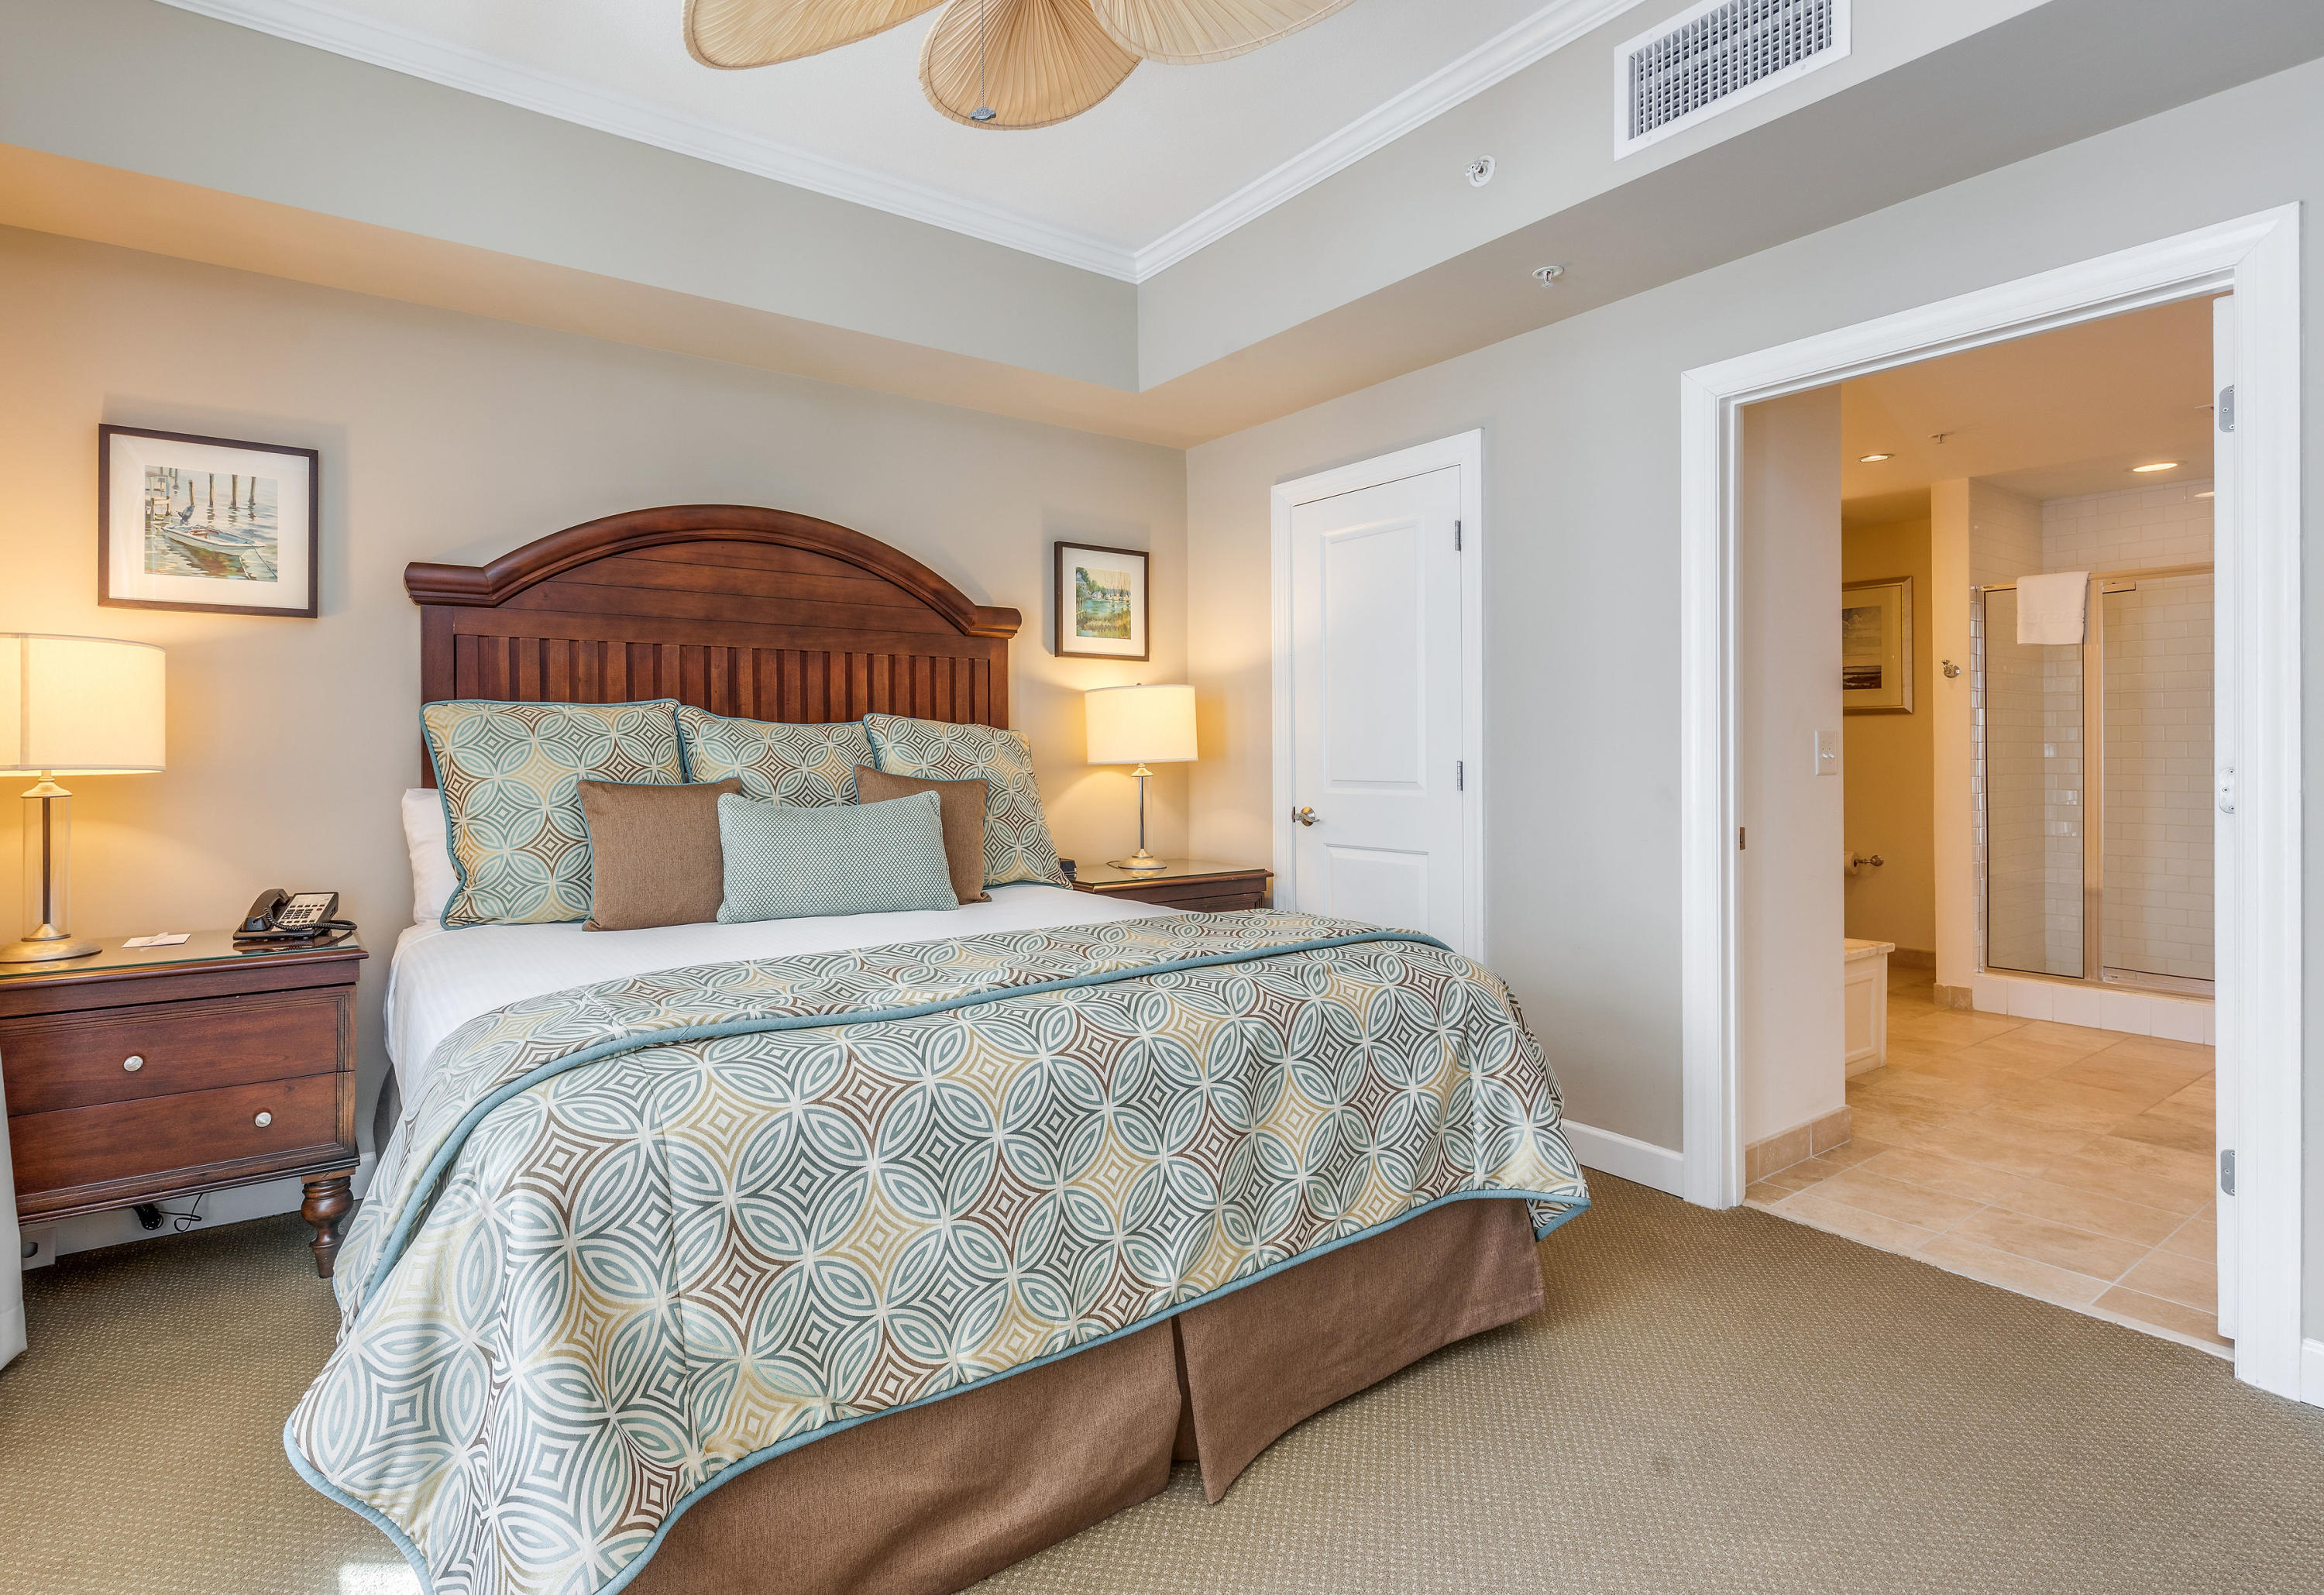 Wild Dunes Homes For Sale - 410-A Village At Wild Dunes, Isle of Palms, SC - 20